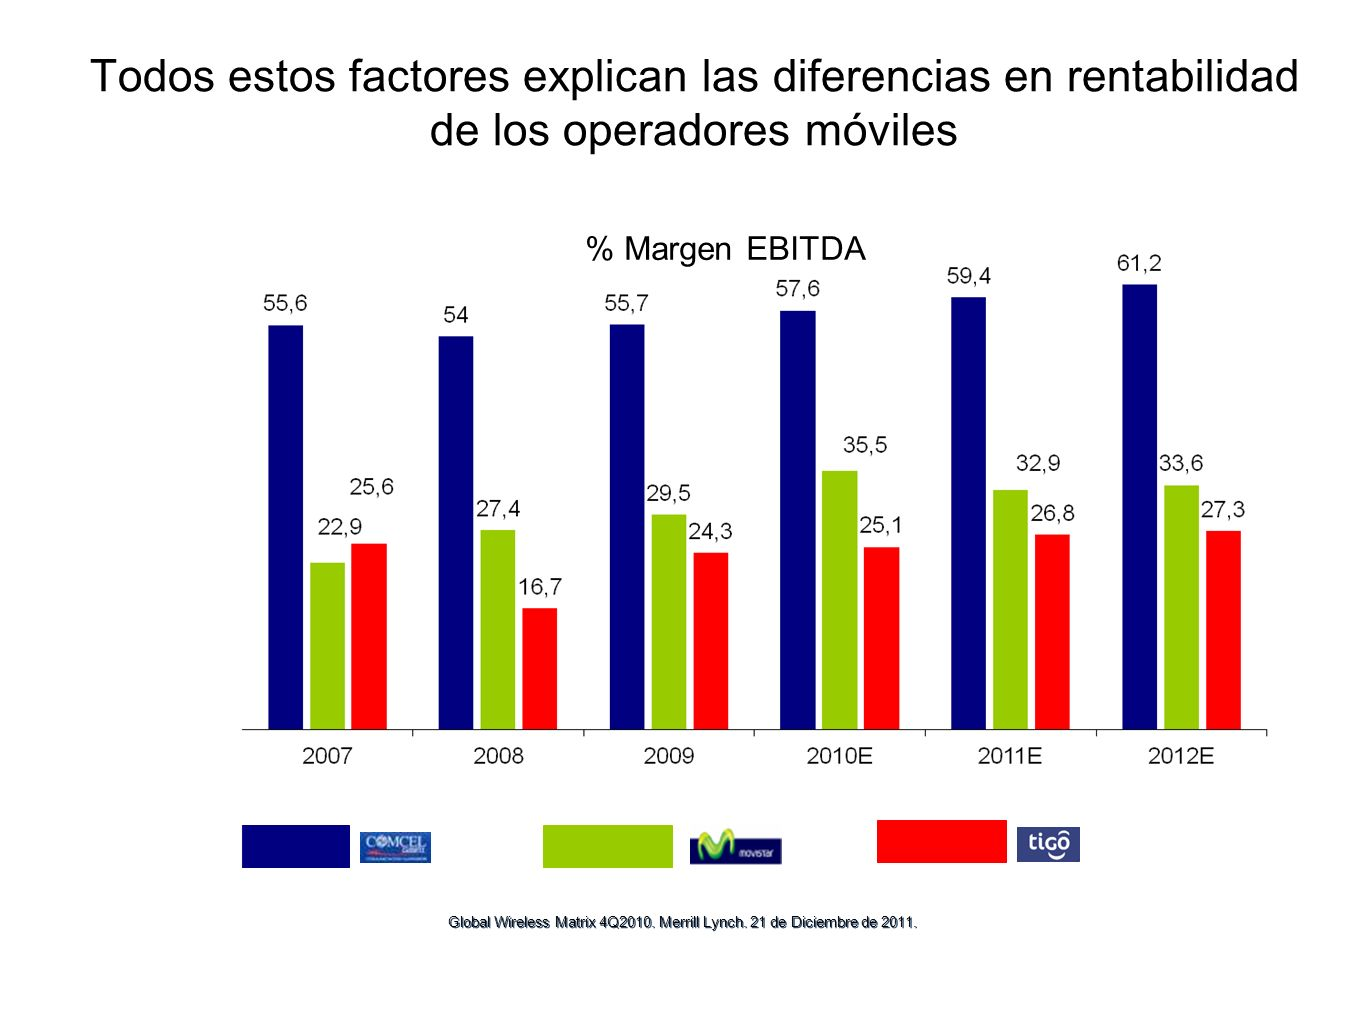 Todos estos factores explican las diferencias en rentabilidad de los operadores móviles % Margen EBITDA Global Wireless Matrix 4Q2010. Merrill Lynch.